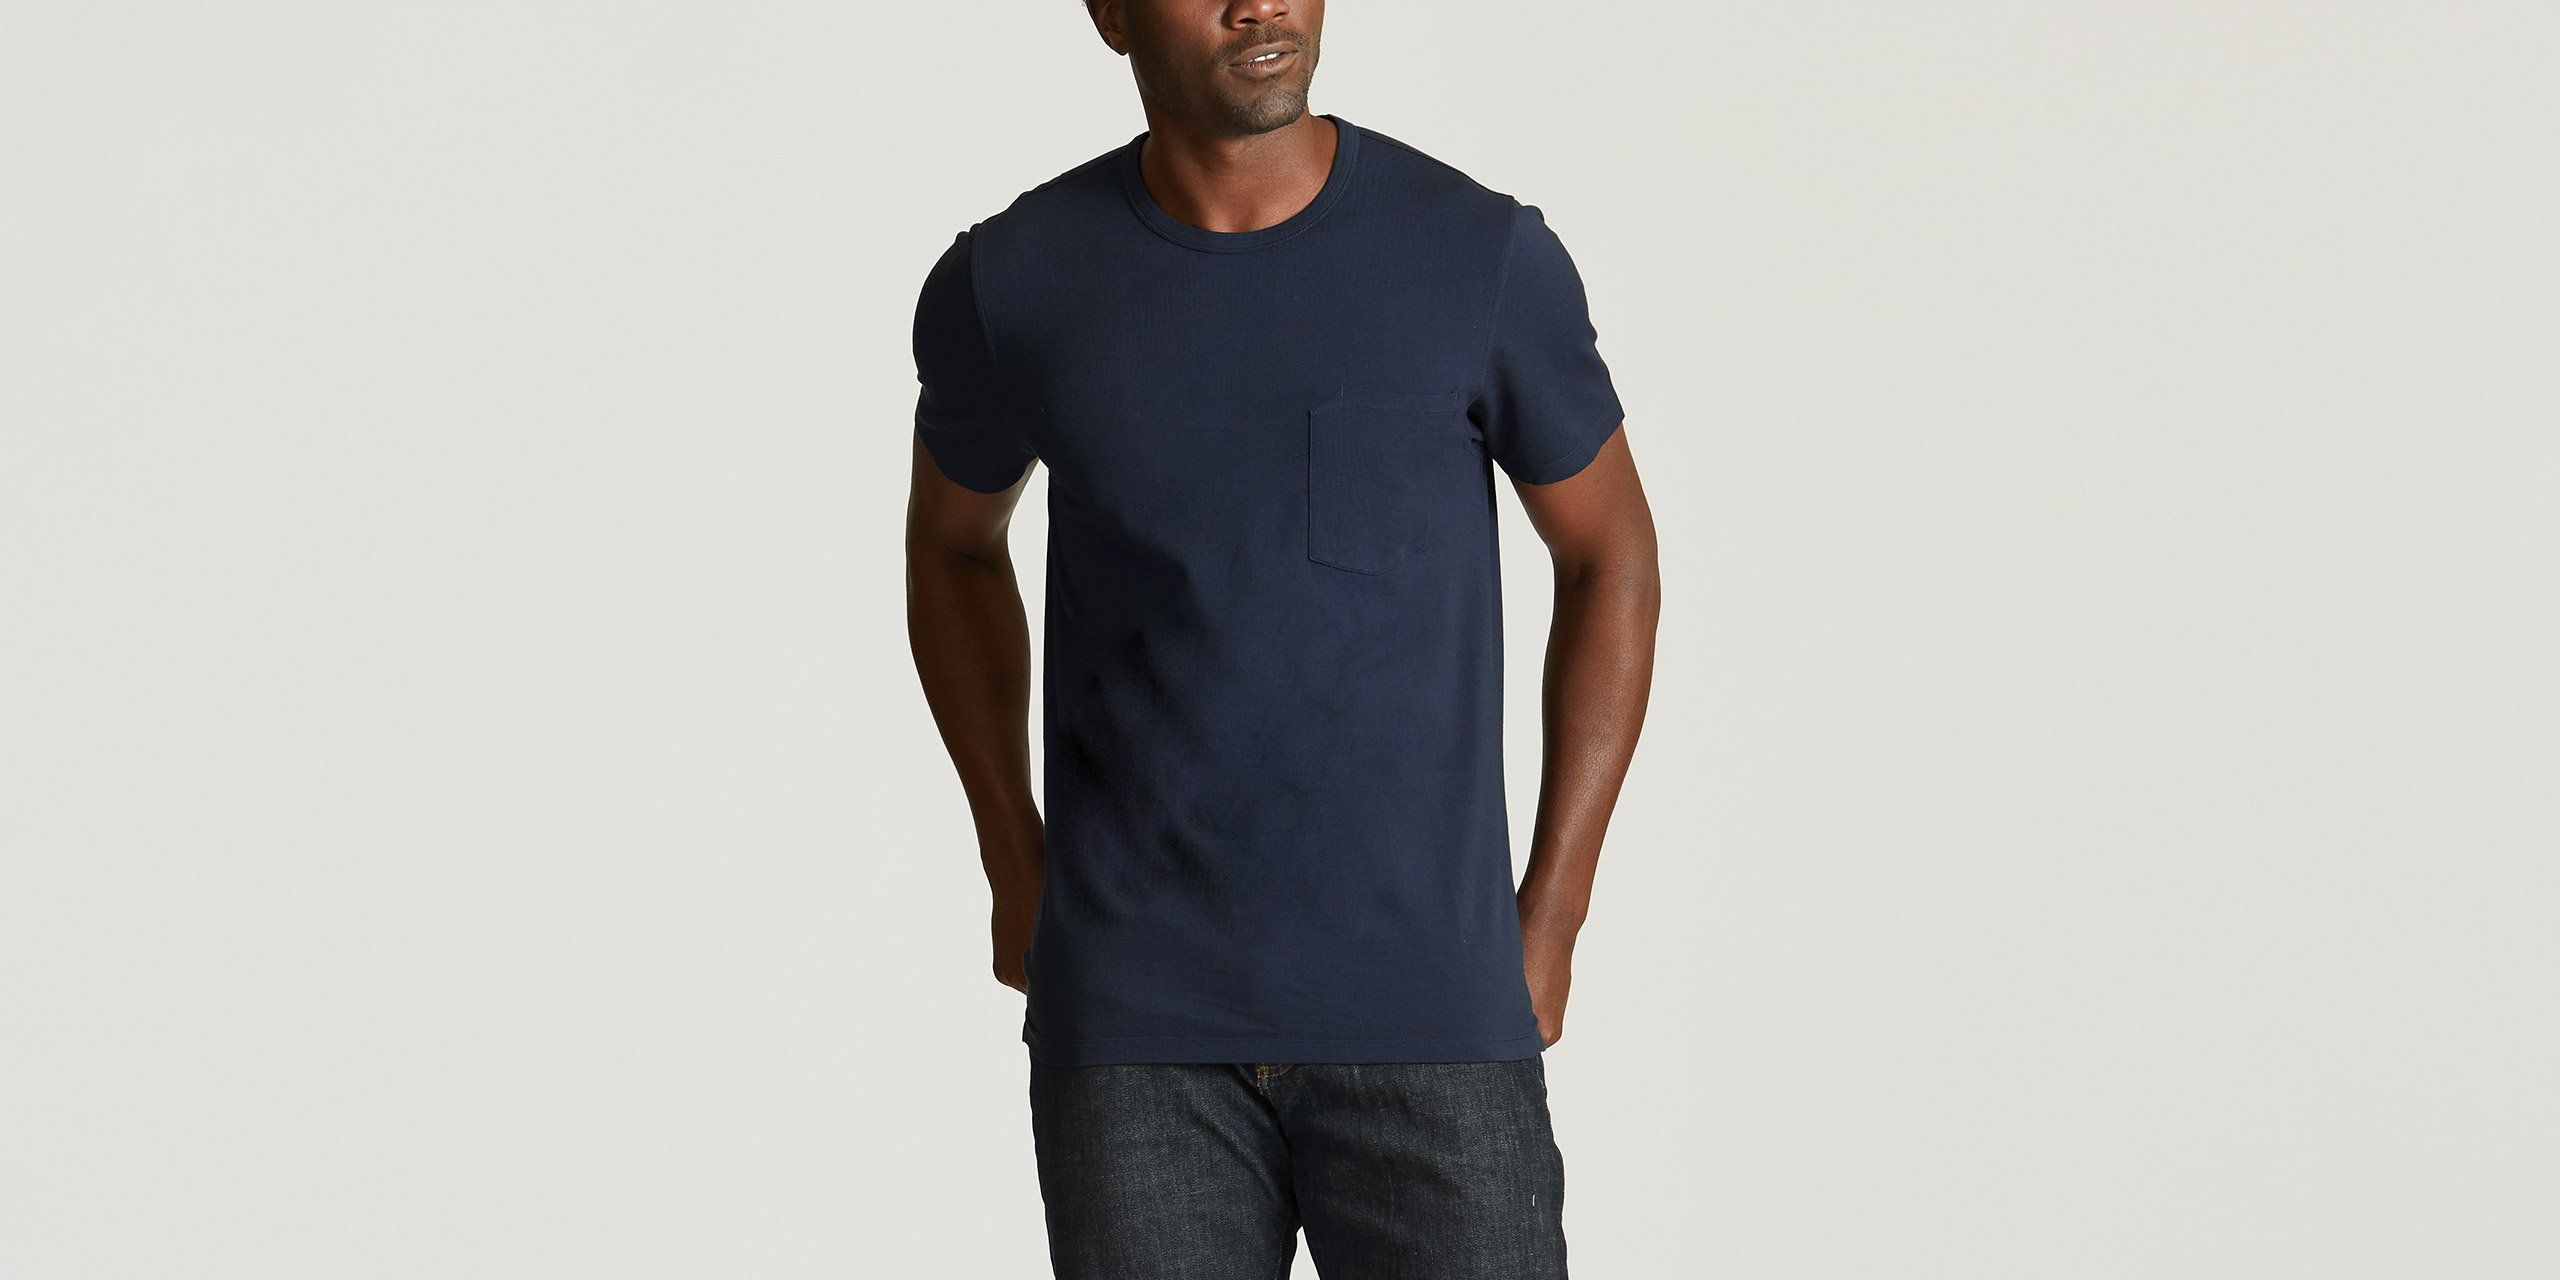 "Made from a stretch-pique knit, the Pique Pocket Tee is the basic every man needs. It features a slim fit and a chest patch pocket with a subtle notch detail, as well as a split hem at the side seams. The Pique Pocket Tee raises the bar on the everyday tee. Size & fit Fits true to size. In-studio model is 6'0"" and wearing size medium. View Size Guide Technical specs 95% cotton, 5% elastane Stretch-pique knit fabric Self binding at neck with double-needle topstitch Chest patch pocket with notch d"